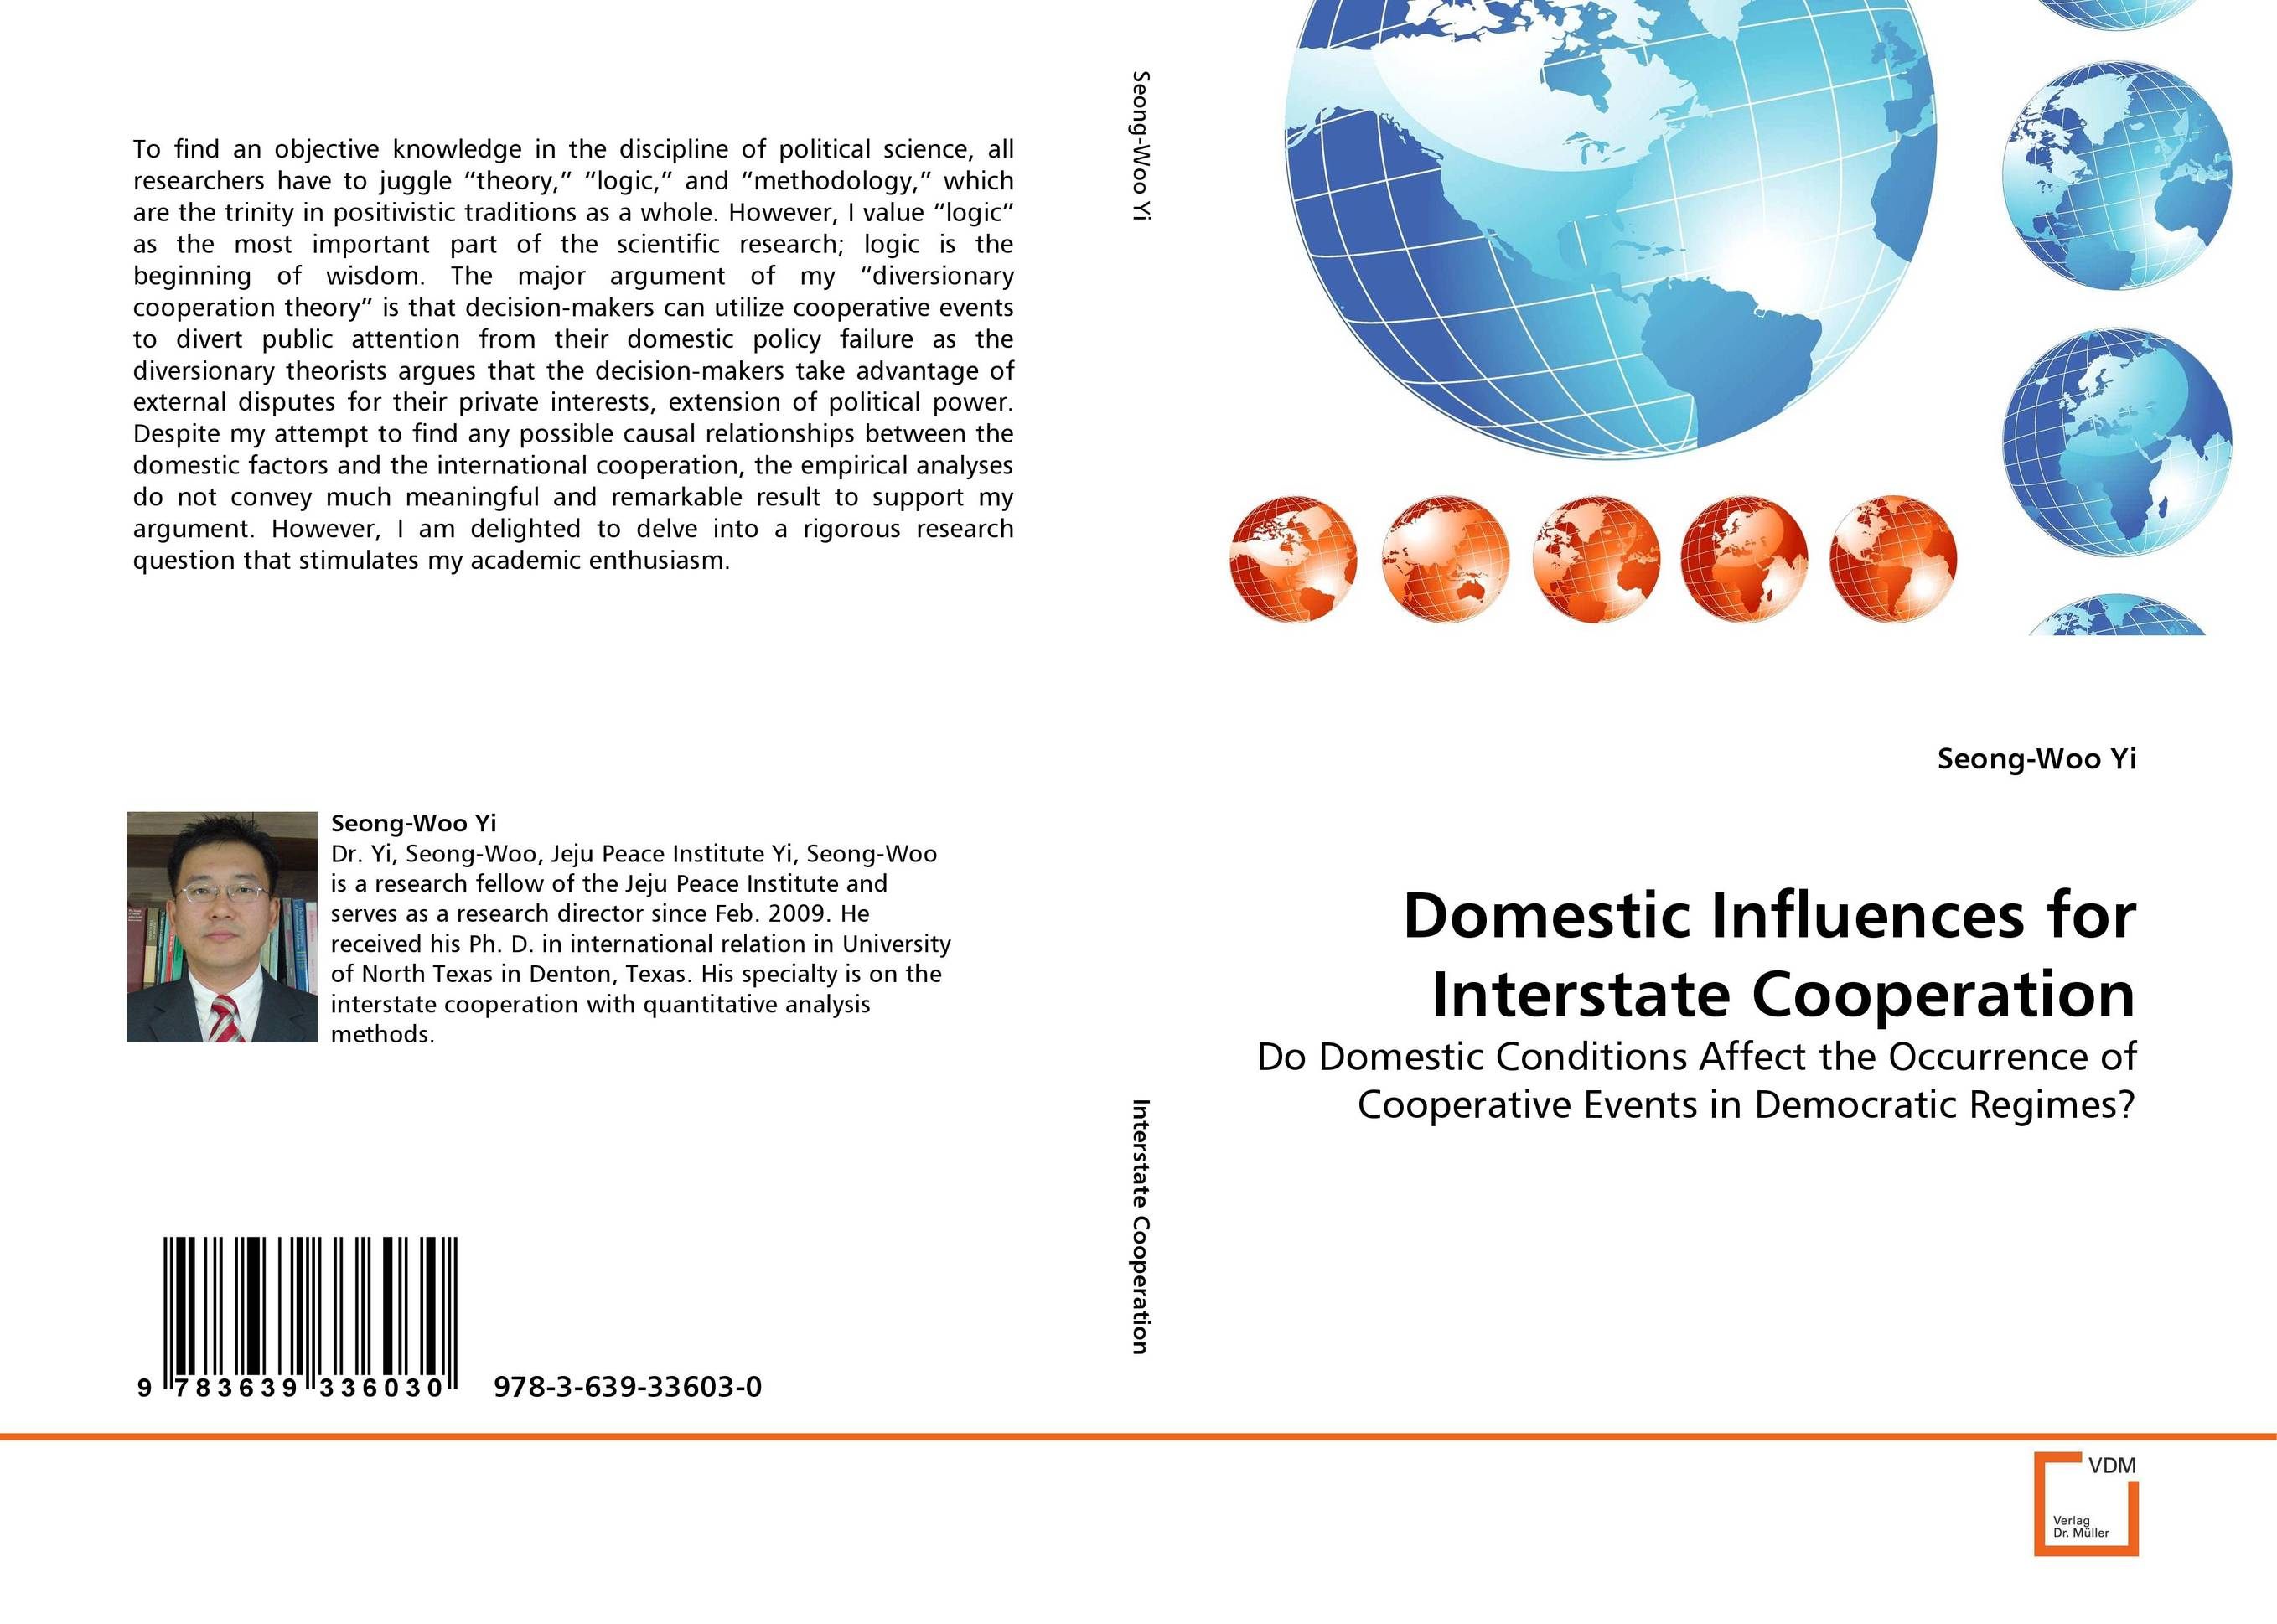 Domestic Influences for Interstate Cooperation scott pratt l logic inquiry argument and order